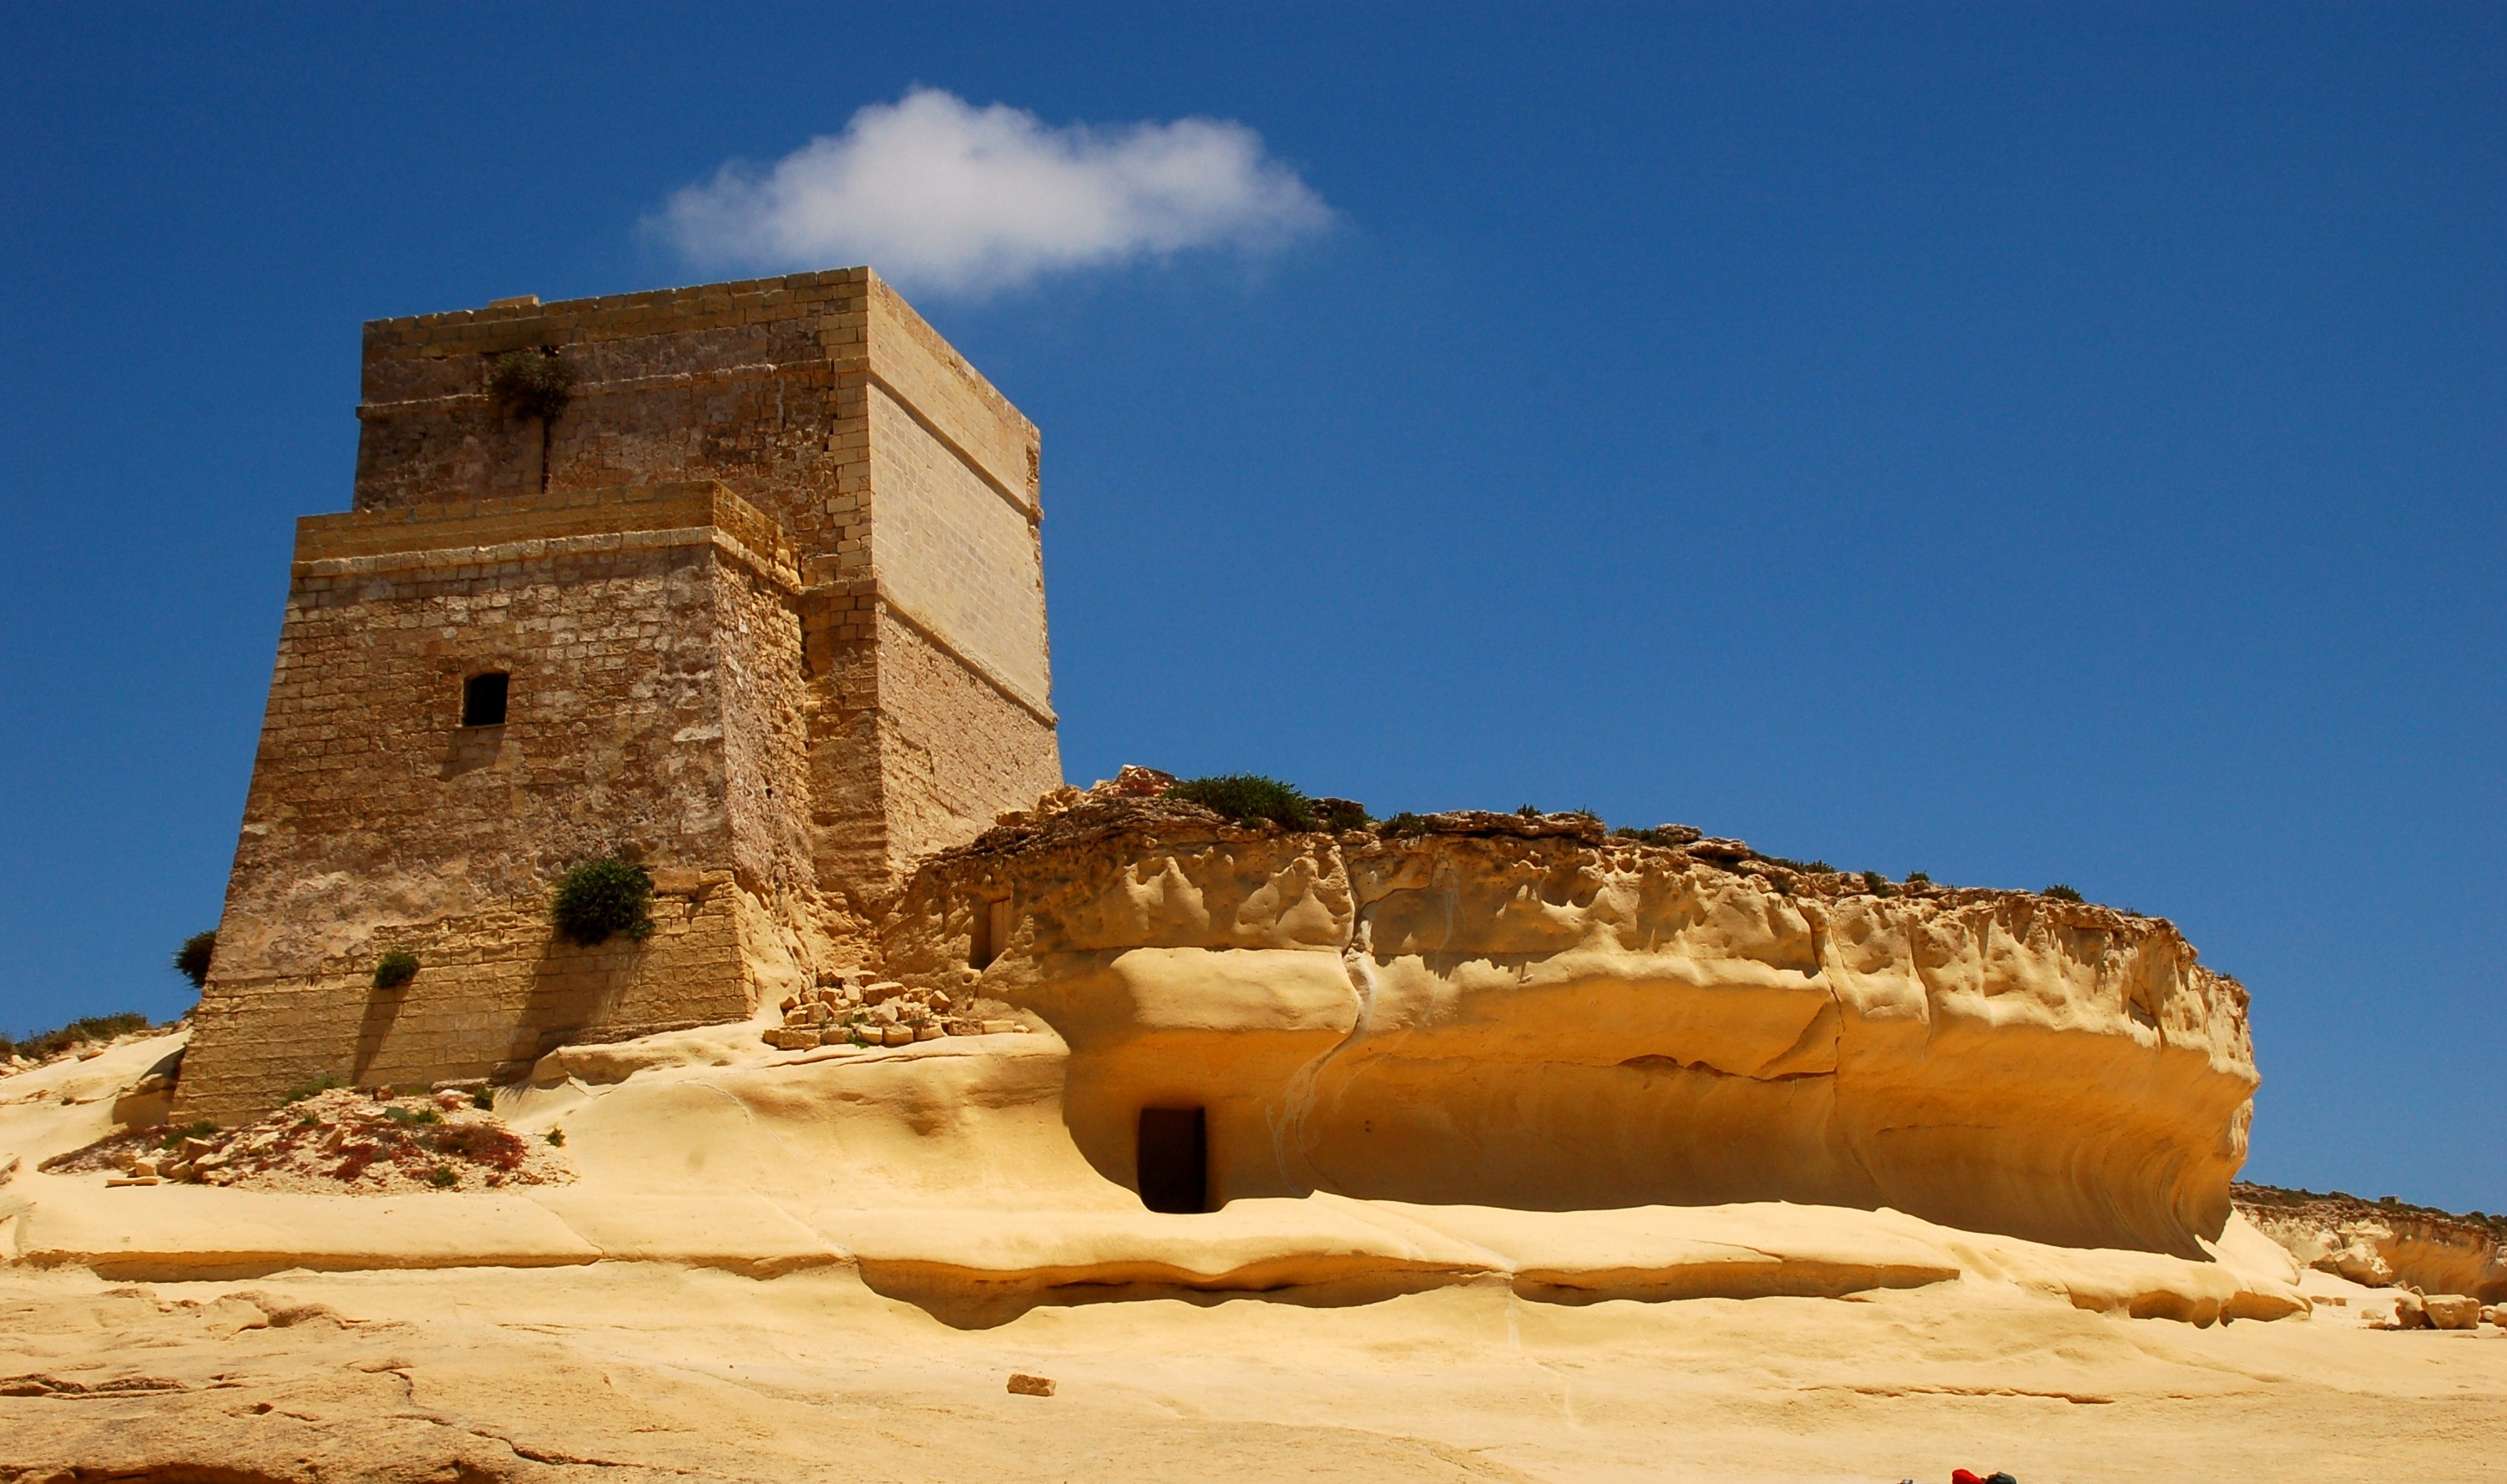 Fortress at Yellow Sandstone at Xlendi, Gozo Island, Malta